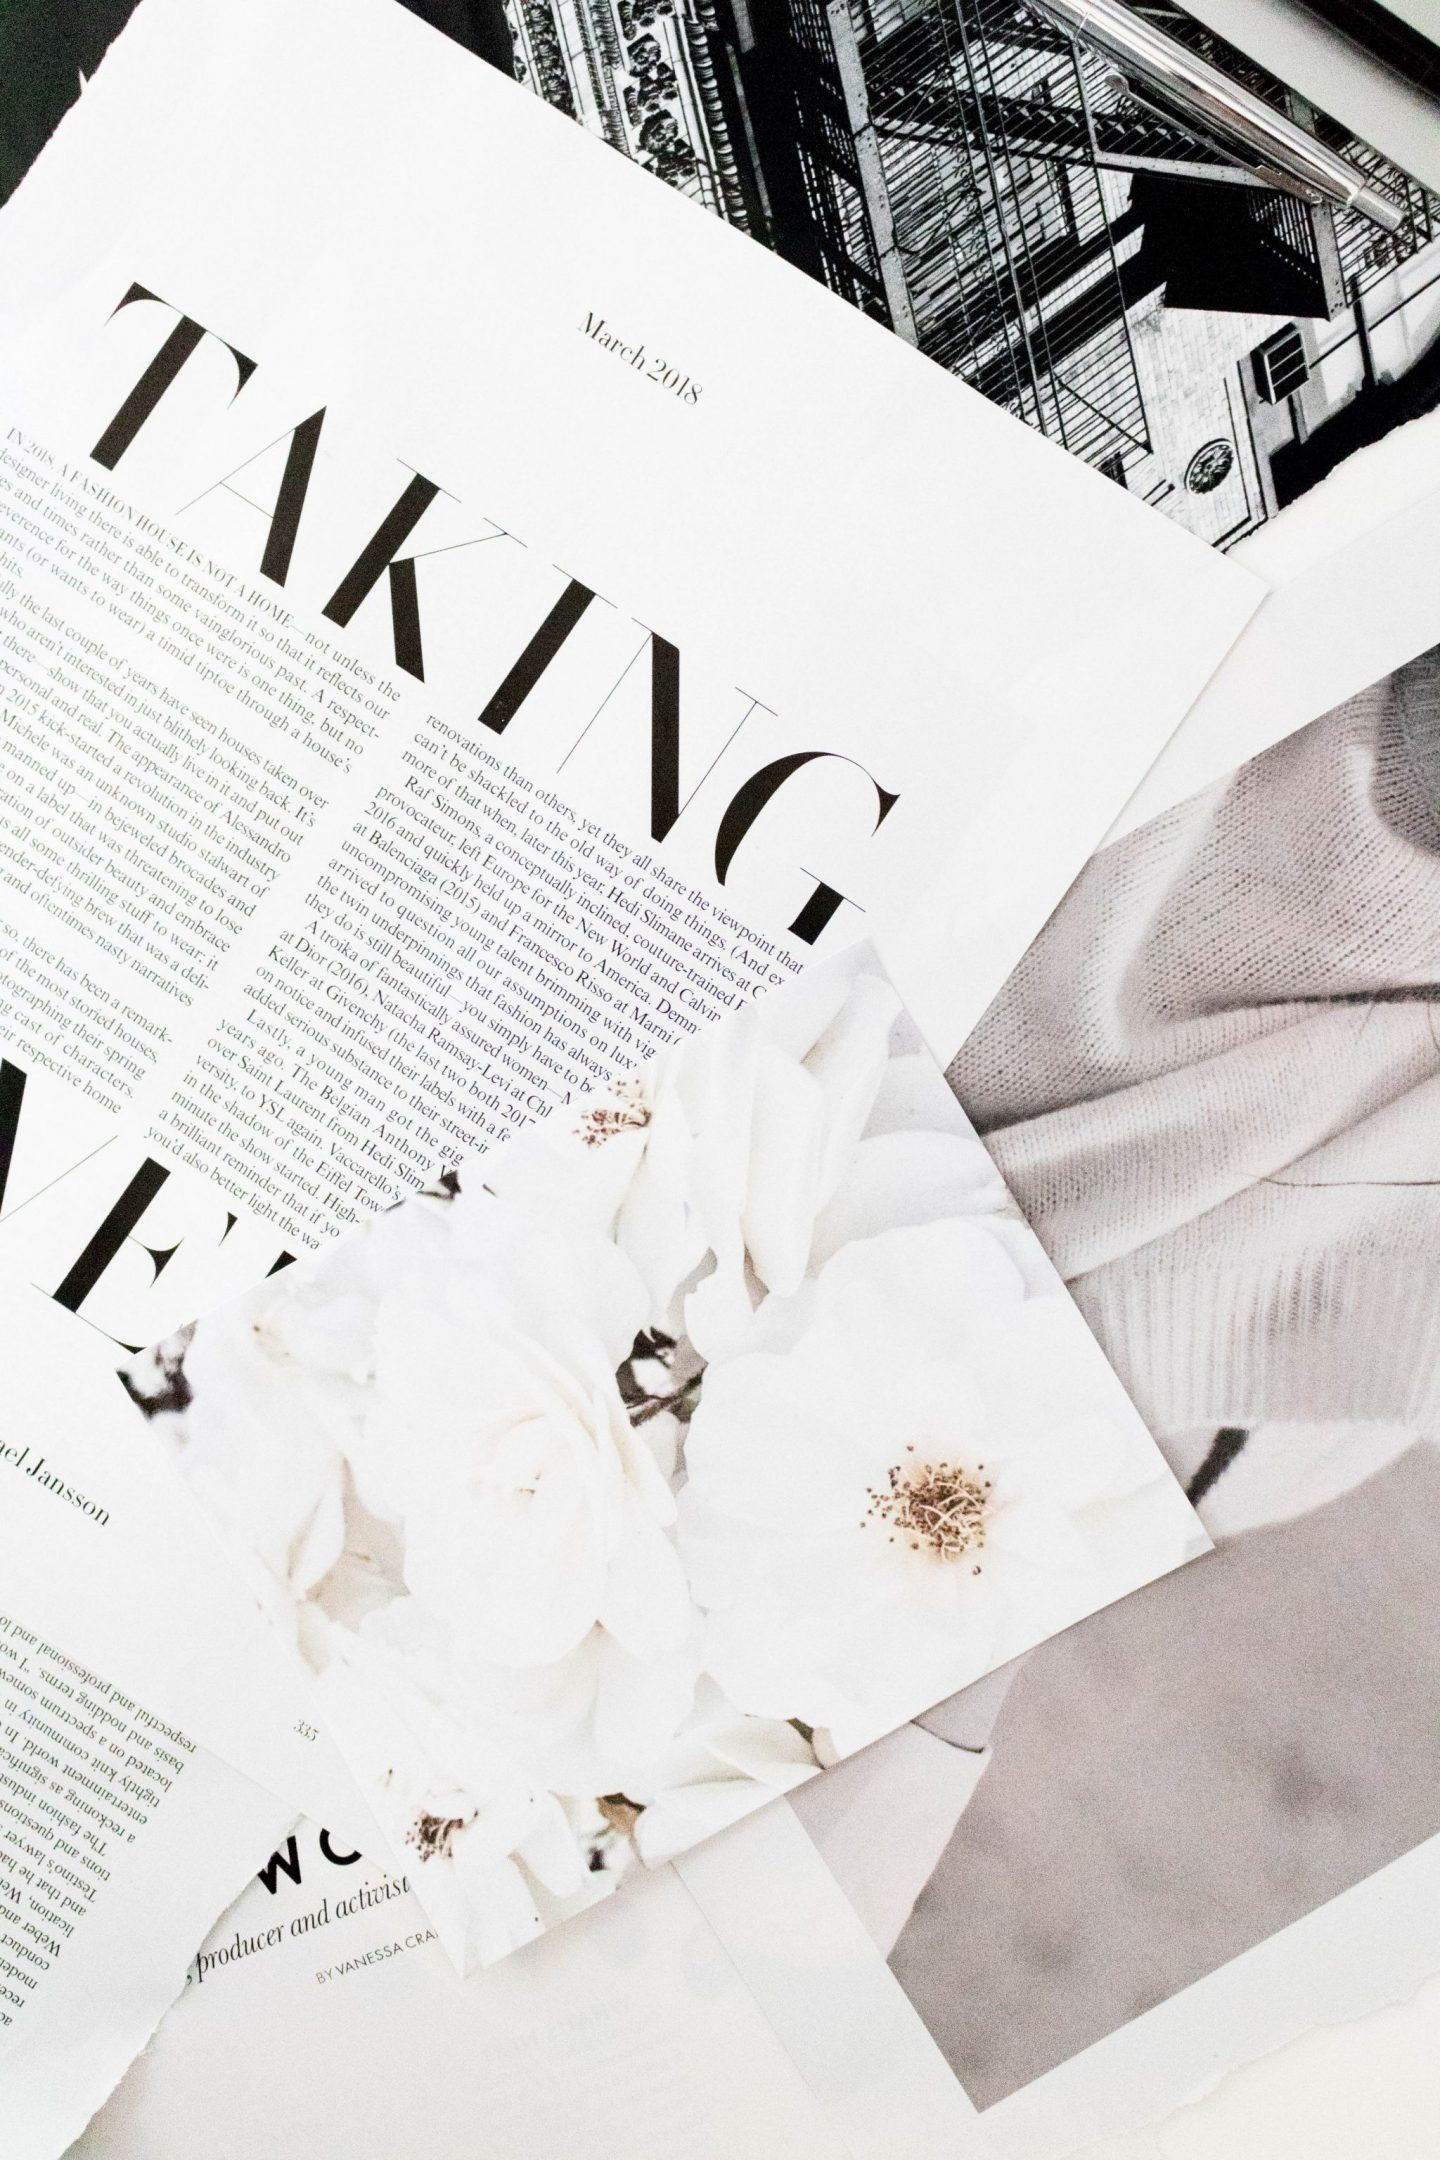 6 Things Blogging Taught Me